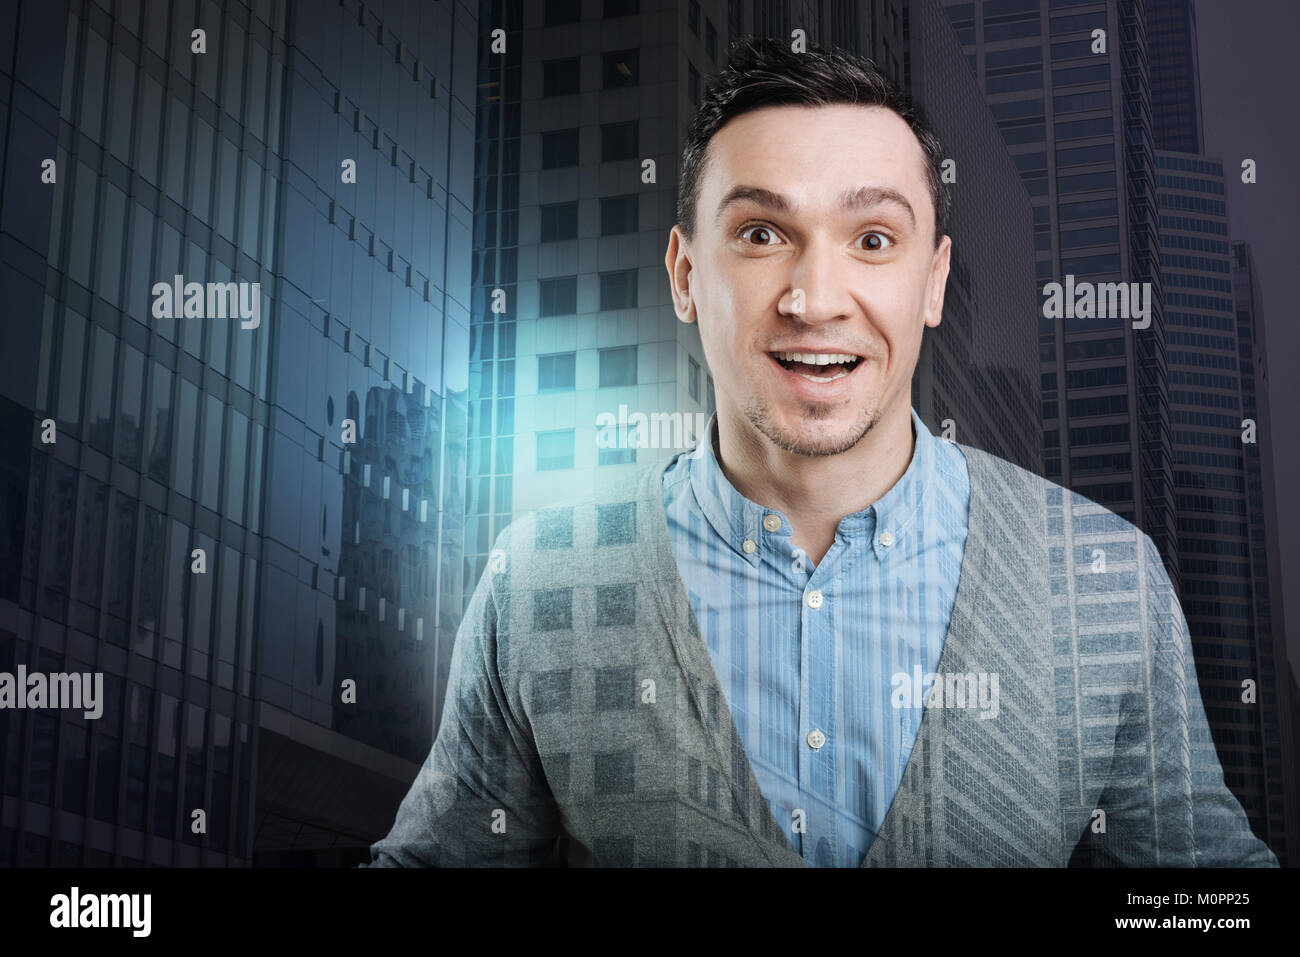 Positive minded young man getting excited - Stock Image